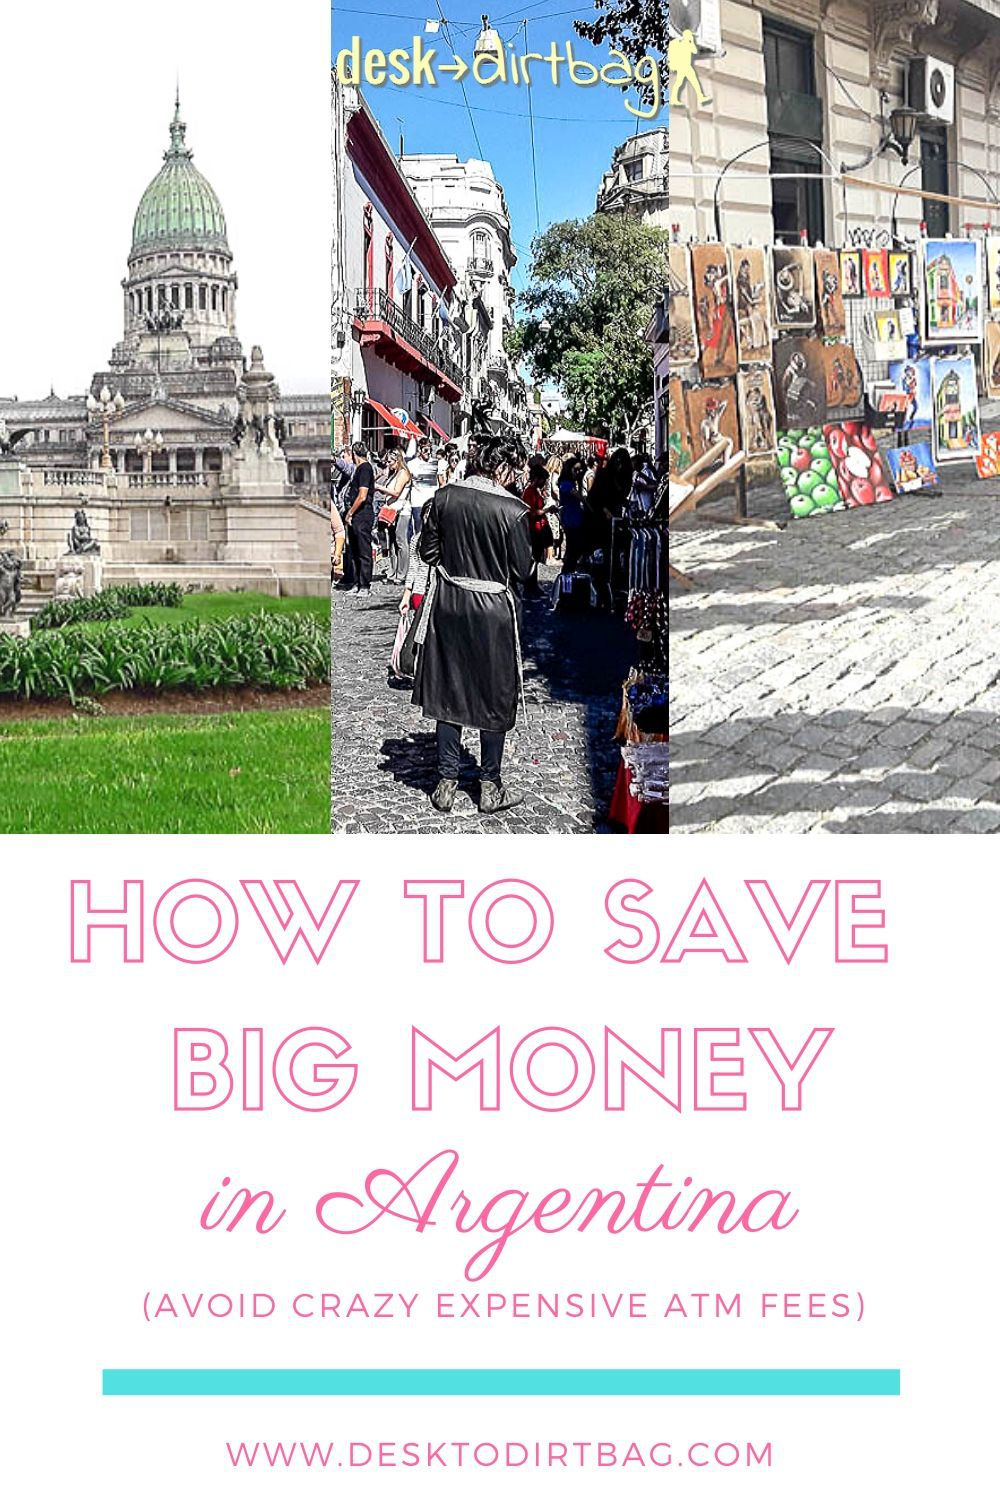 Learn how to save big money in Argentina by avoiding the super expensive ATM fees from local banks